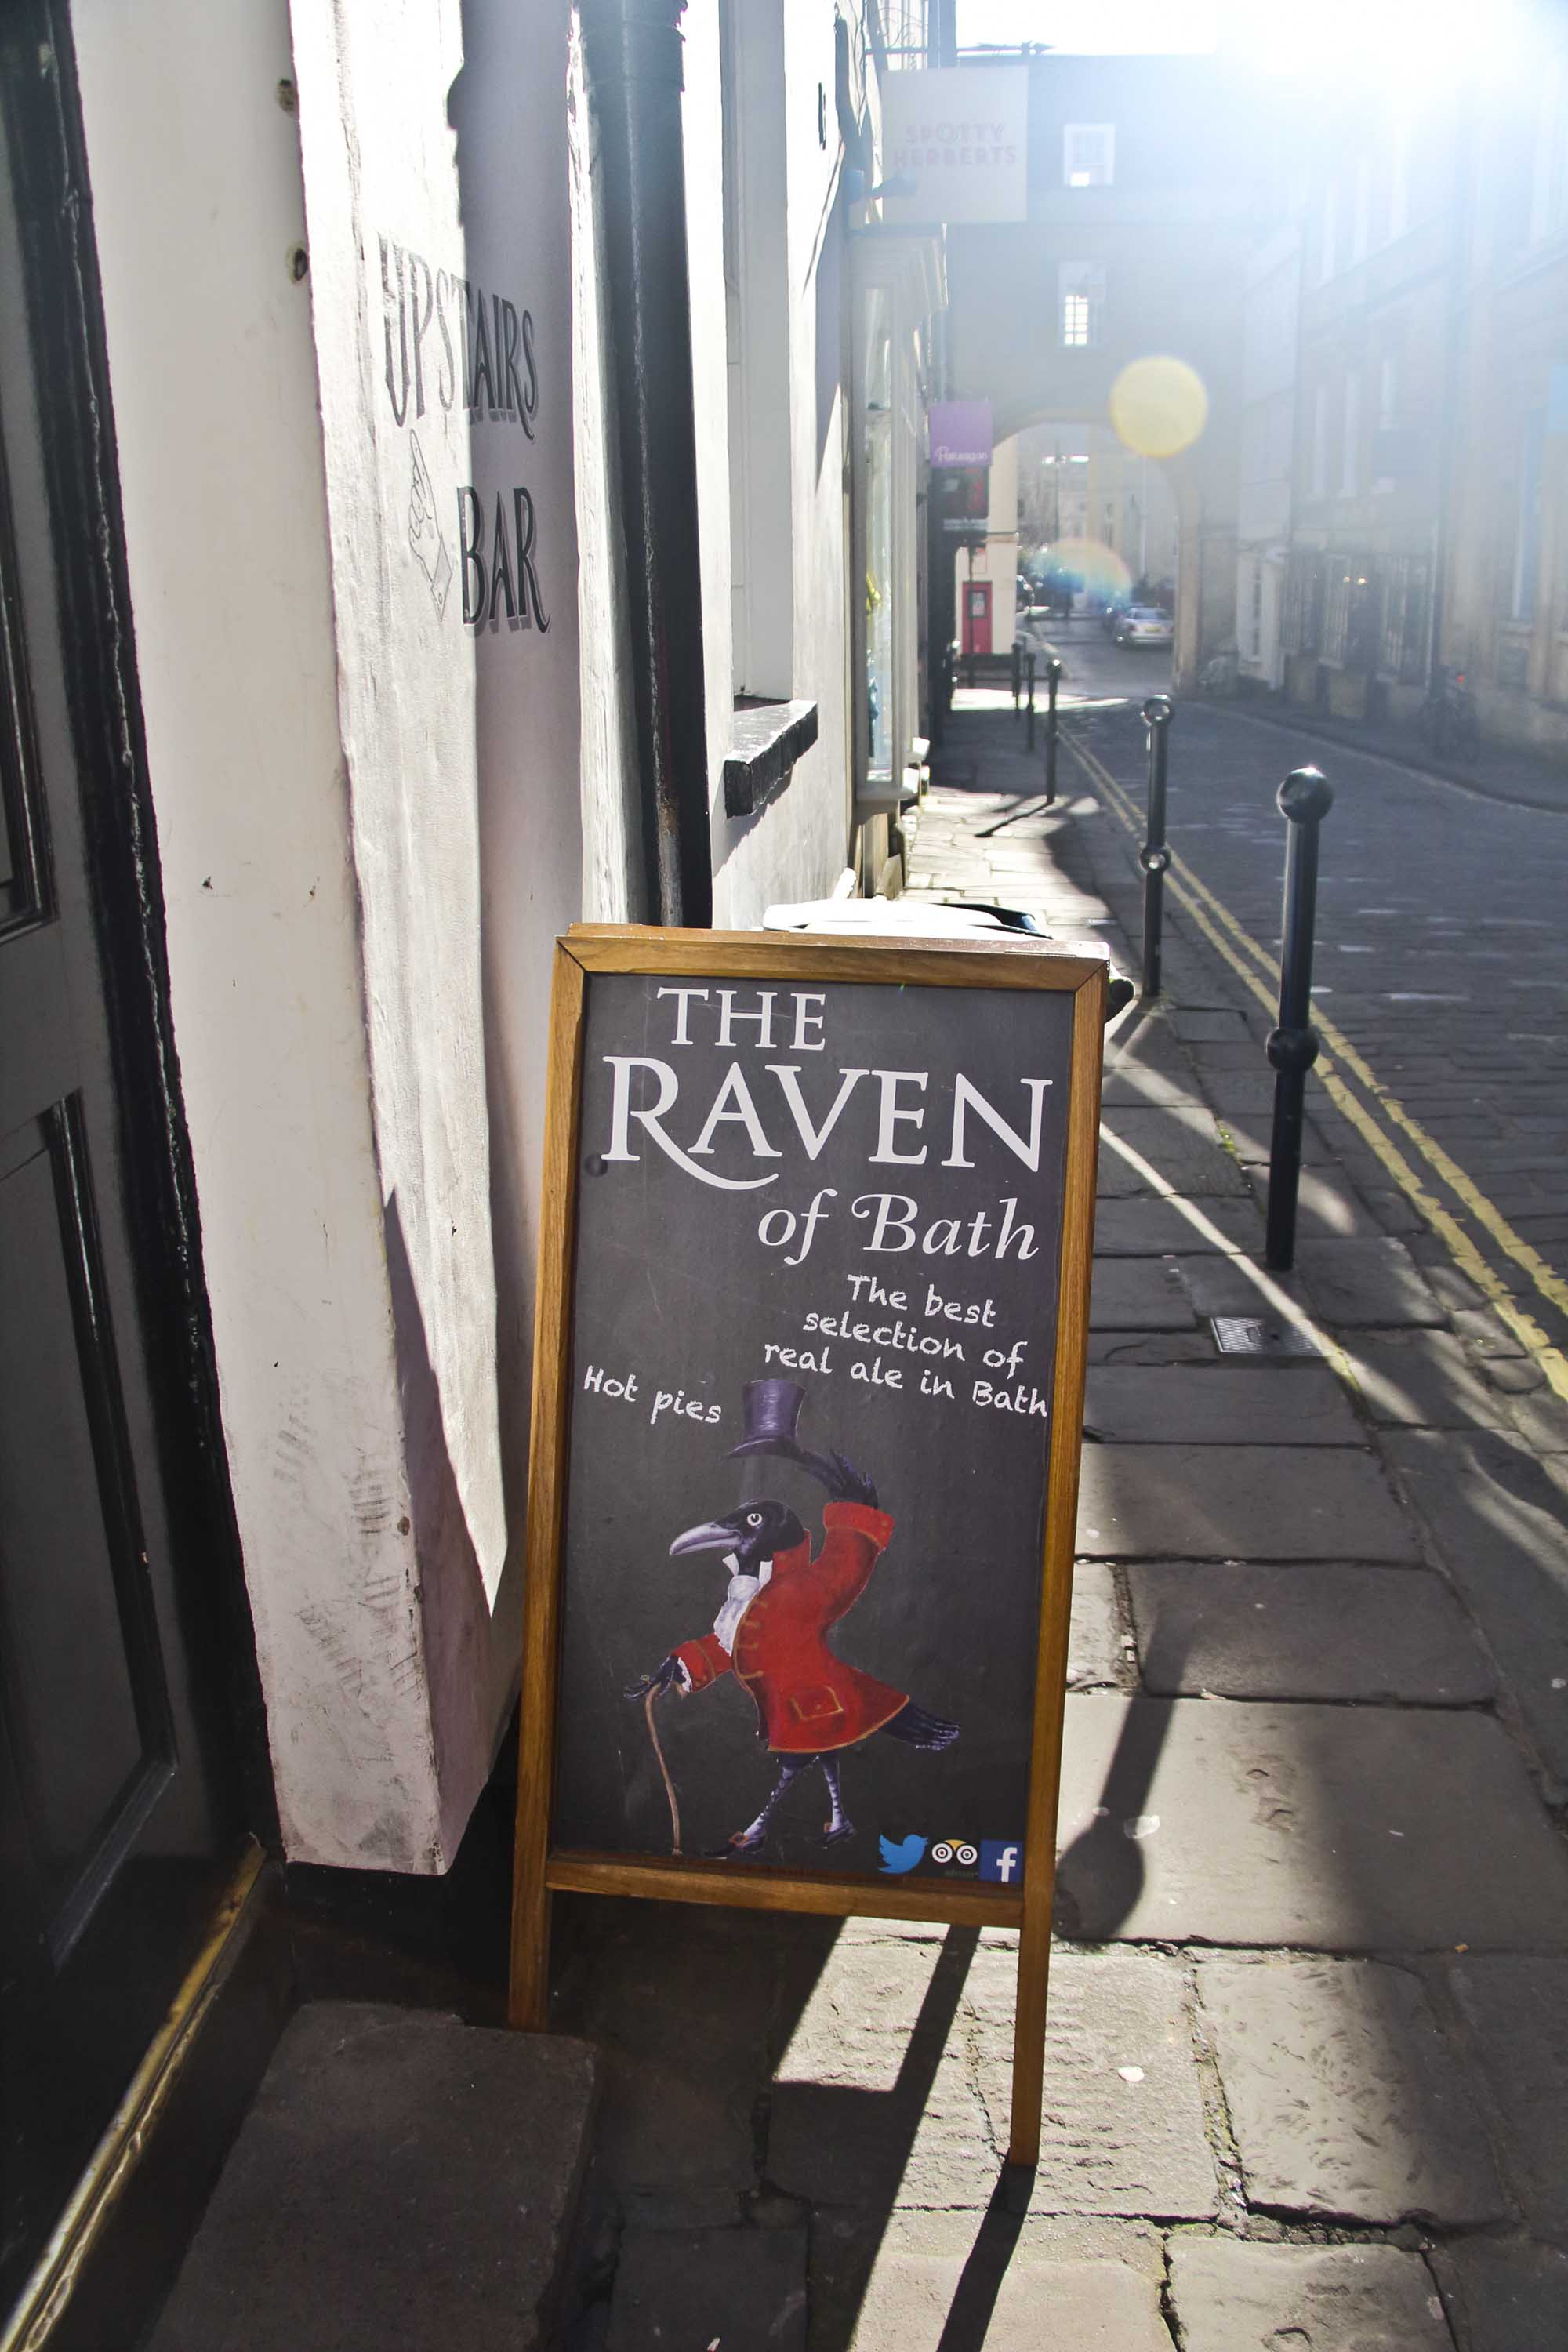 the-raven-of-bath-pub-in-bath.jpg